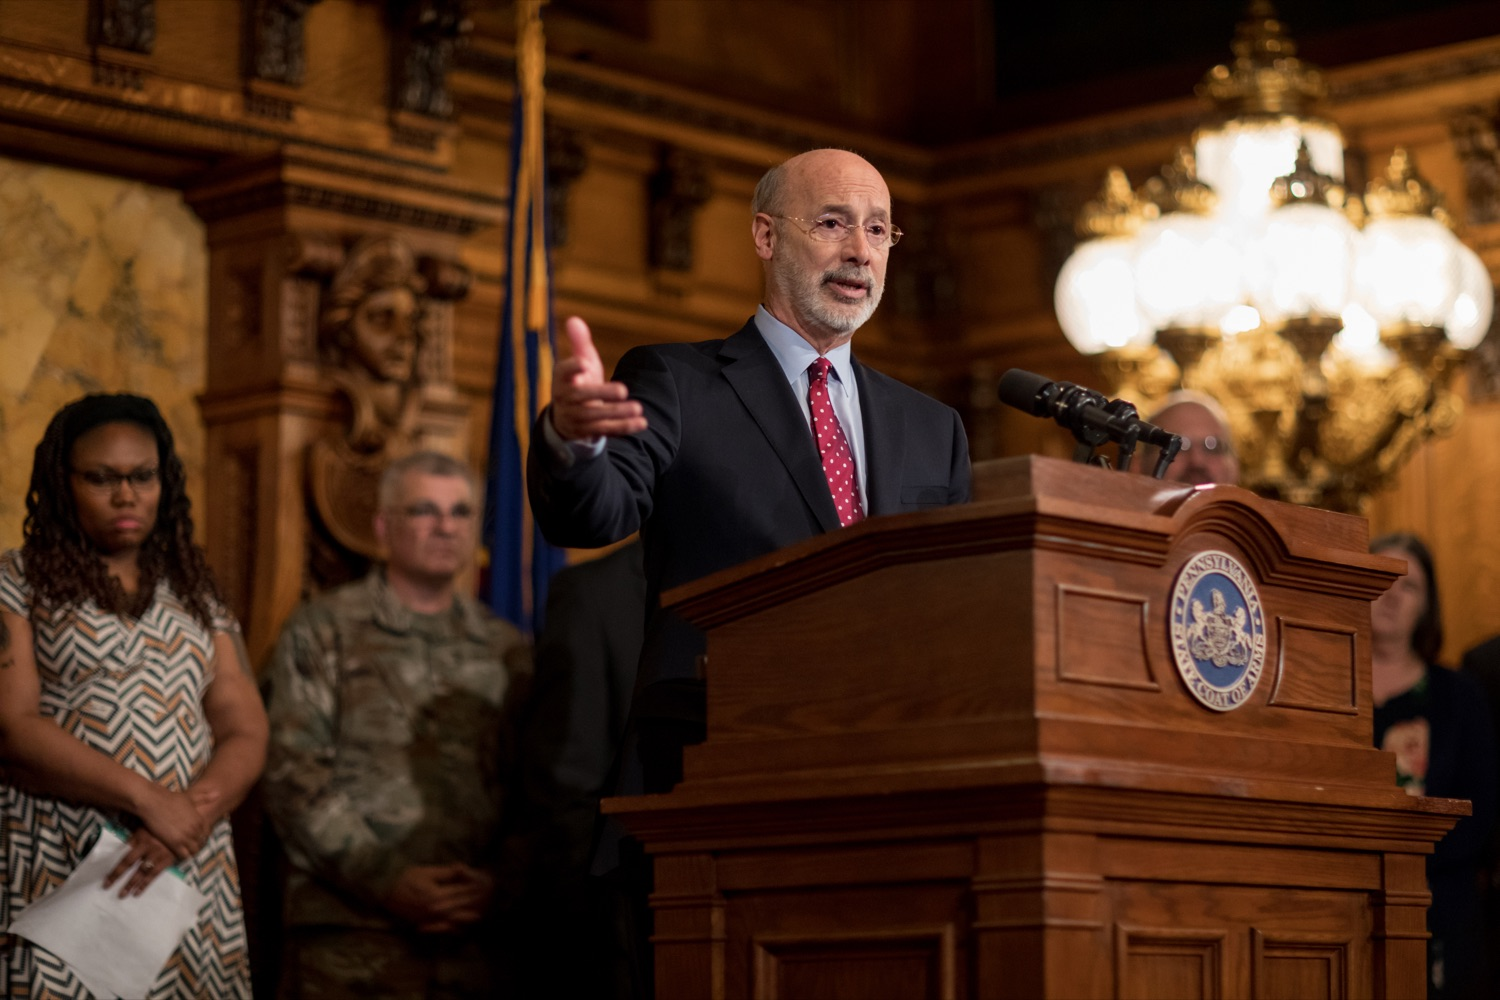 "<a href=""http://filesource.abacast.com/commonwealthofpa/photo/17694_GOV_Mental_Health_NK_001.JPG"" target=""_blank"">⇣ Download Photo<br></a>Pennsylvania Governor Tom Wolf speaks during a press conference inside the Governor's Reception Room at the State Capitol building in Harrisburg on Thursday, January 2, 2020. Governor Wolf announced a focused all-agency effort and anti-stigma campaign, Reach Out PA: Your Mental Health Matters, aimed at expanding resources and the states comprehensive support of mental health and related health care priorities in Pennsylvania."